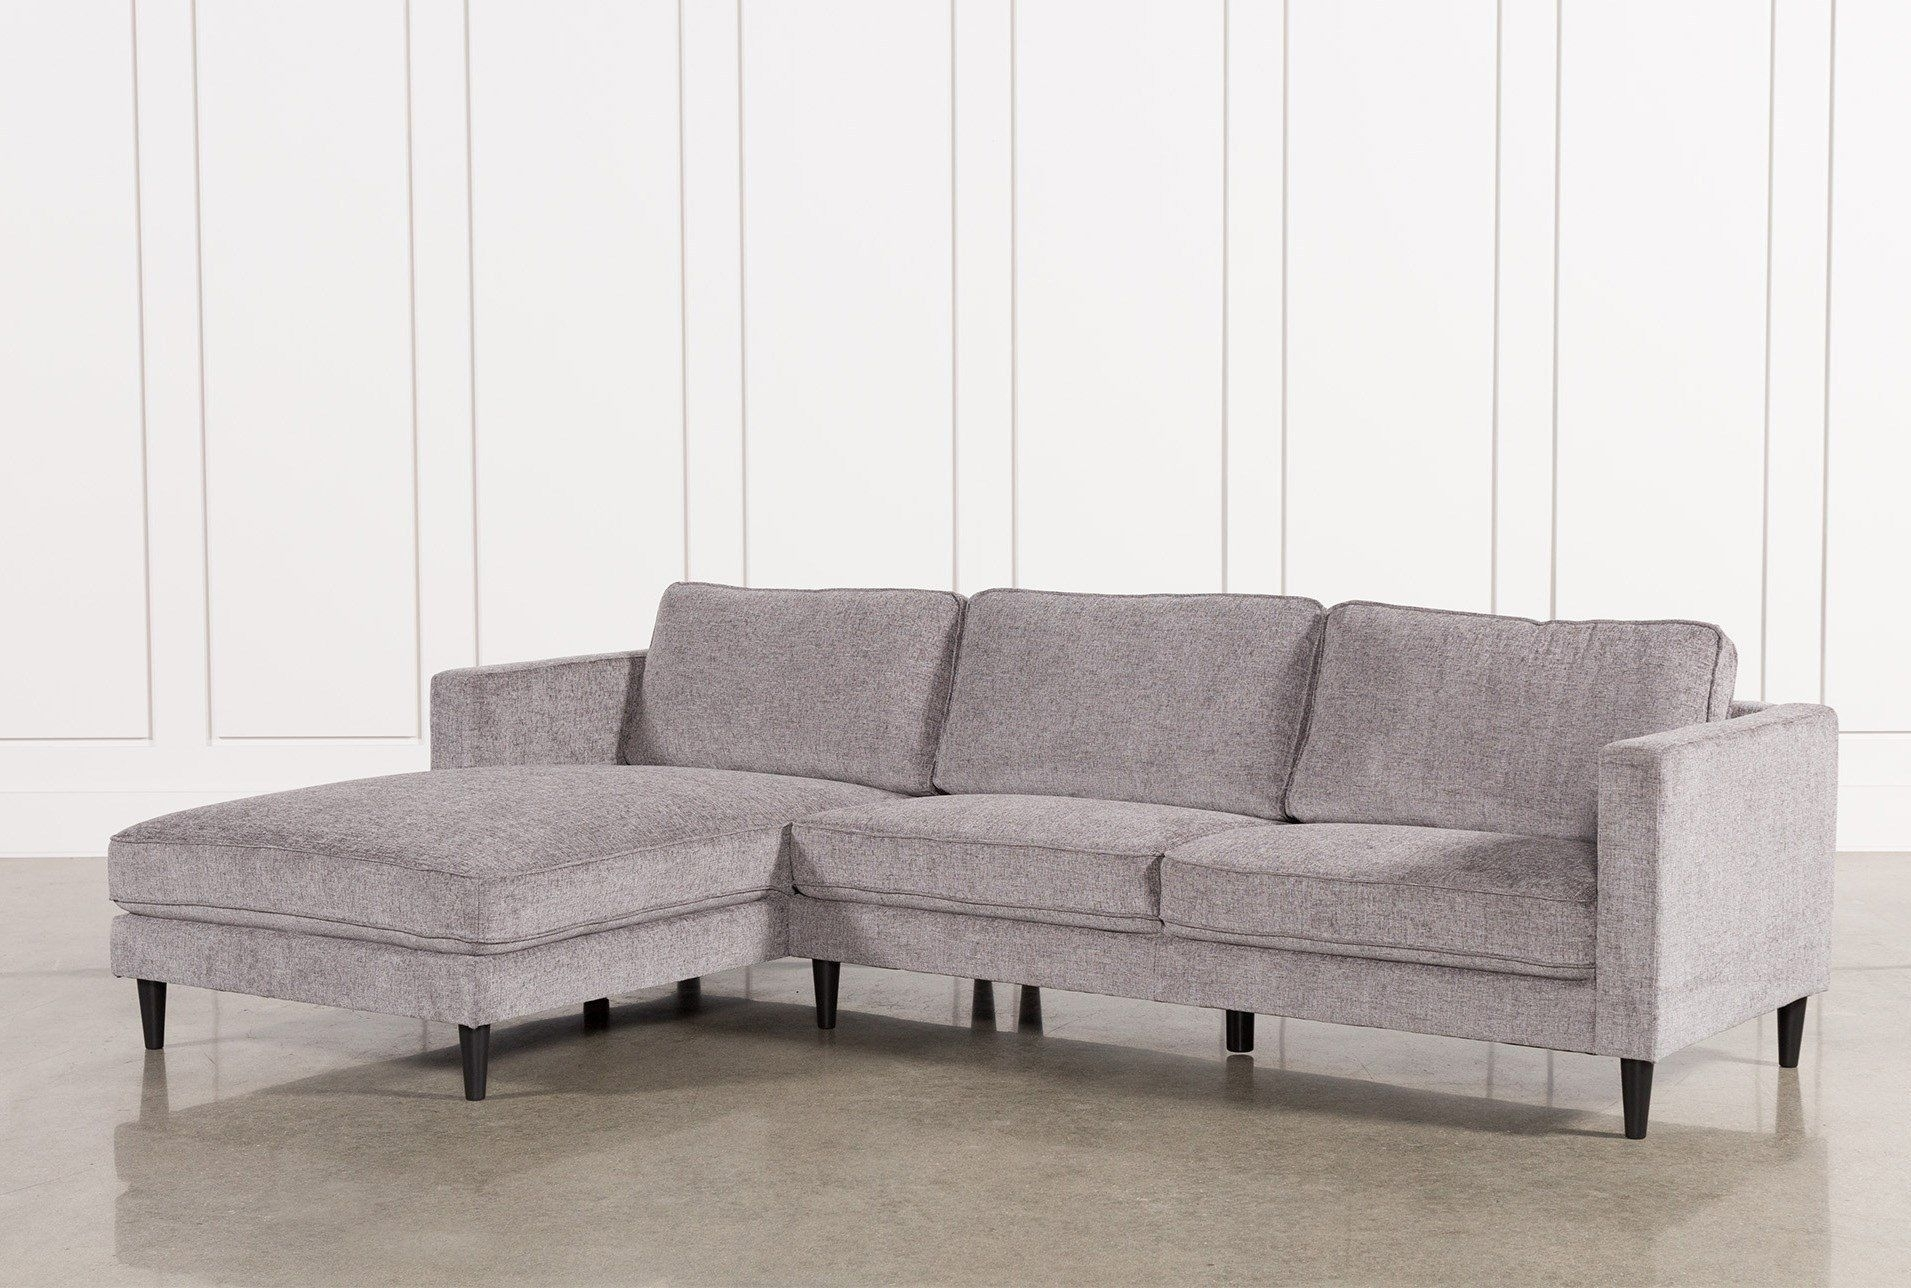 Cosmos Grey 2 Piece Sectional W/laf Chaise | Couches | Pinterest Regarding Avery 2 Piece Sectionals With Laf Armless Chaise (Image 10 of 25)